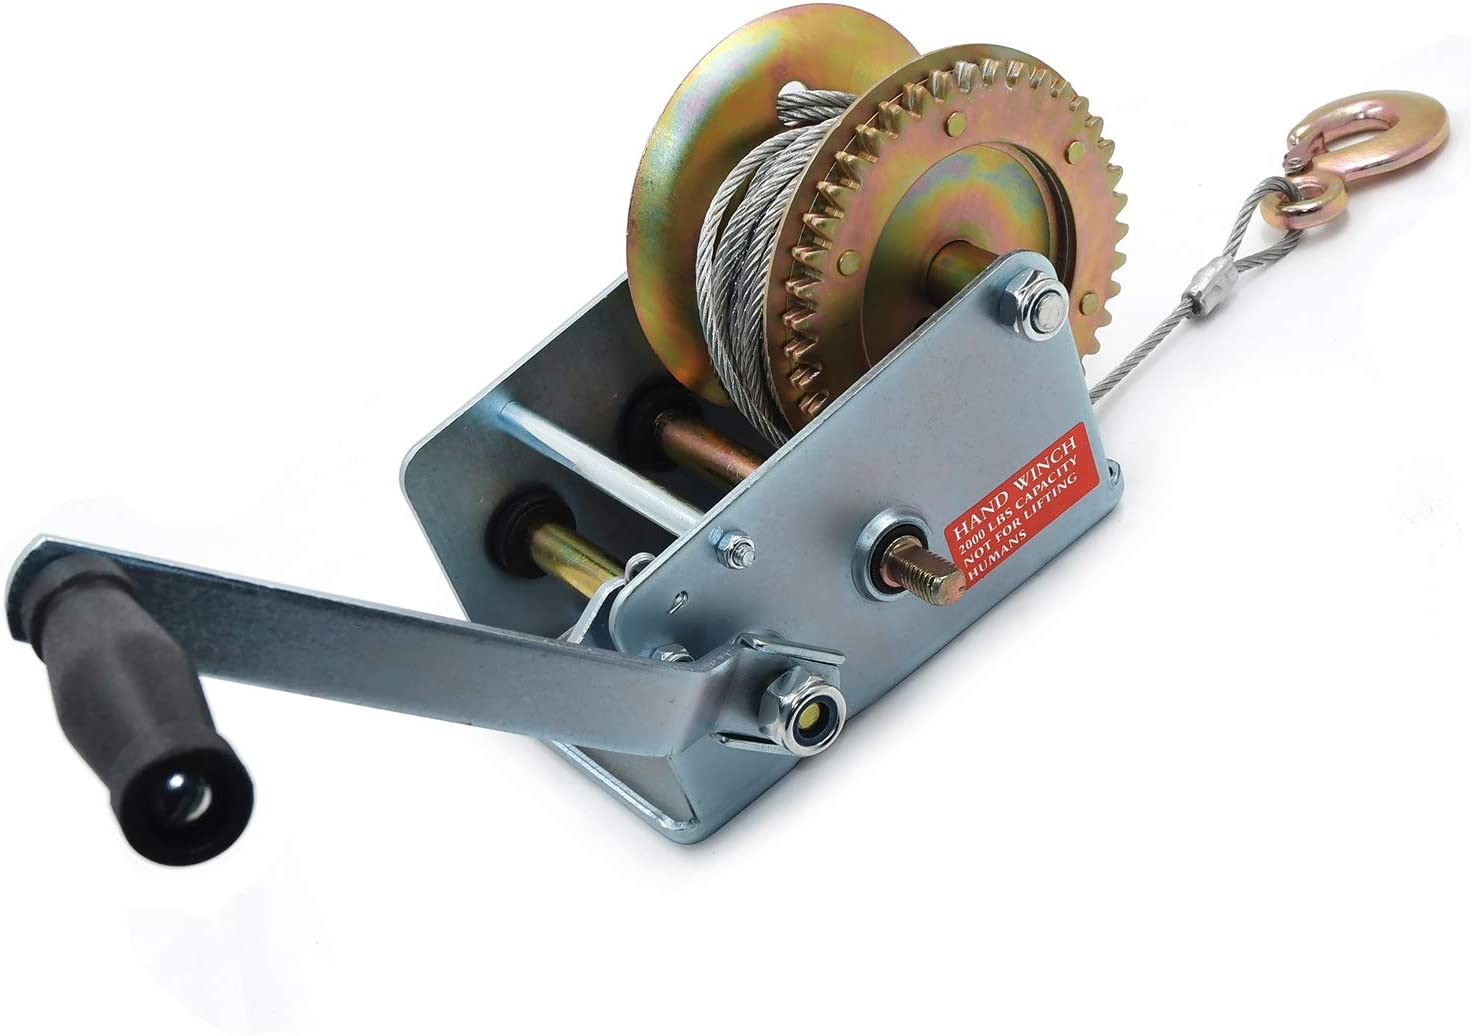 XKMT- Trailer Winch 2000Lbs Dual Towing Max Popular overseas 70% OFF Gear Boat Hand Tra